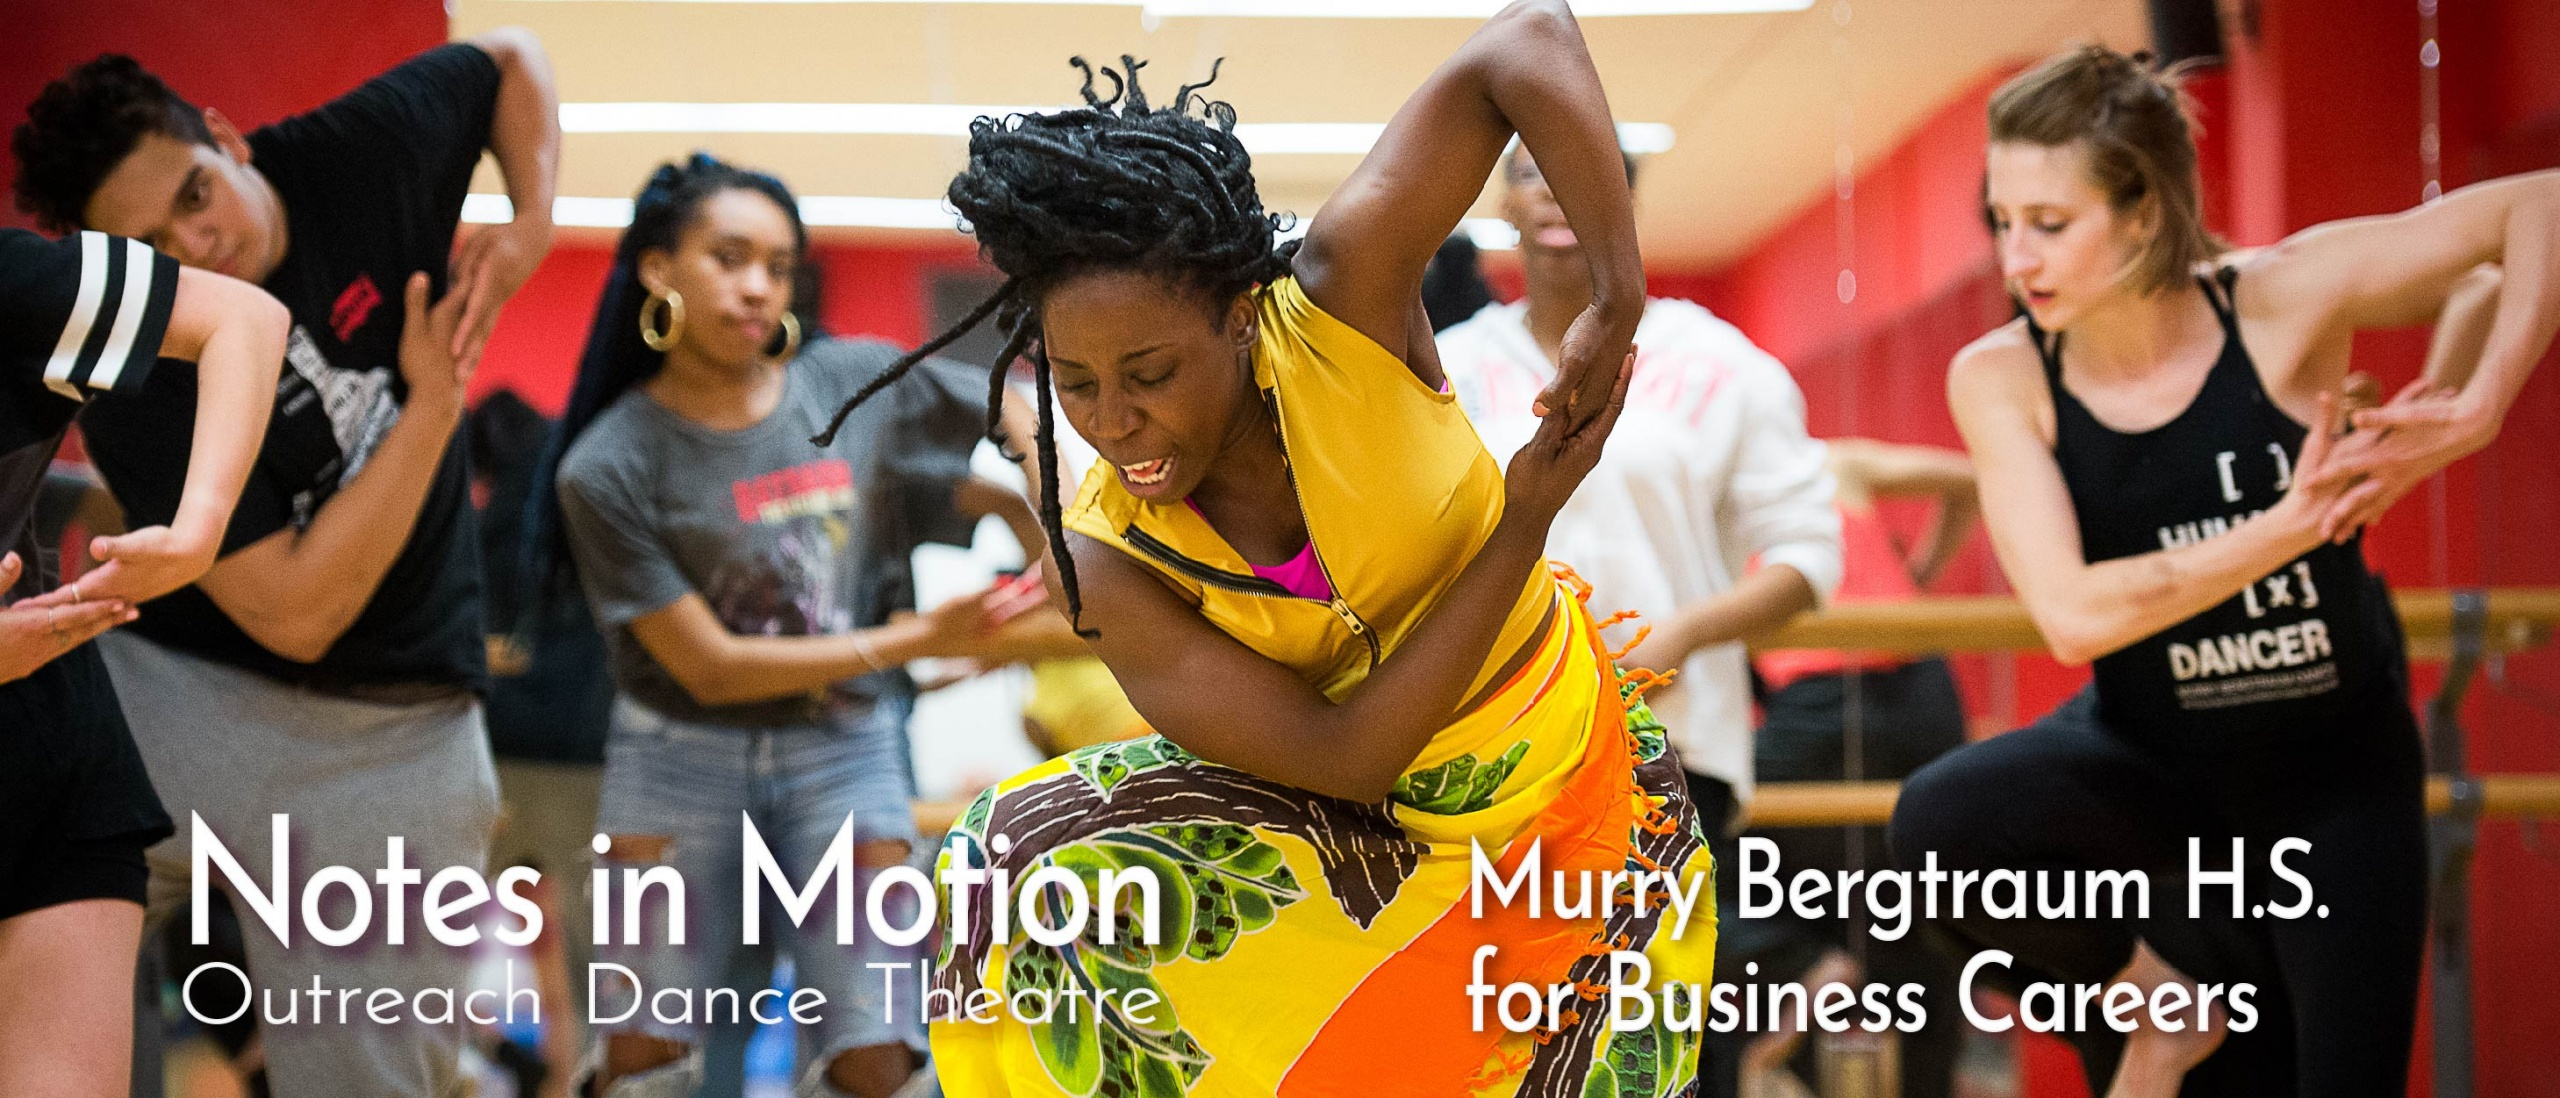 Students dancing in an African dance residency at Murry Bergtraum High School for Business Careers, Manhattan